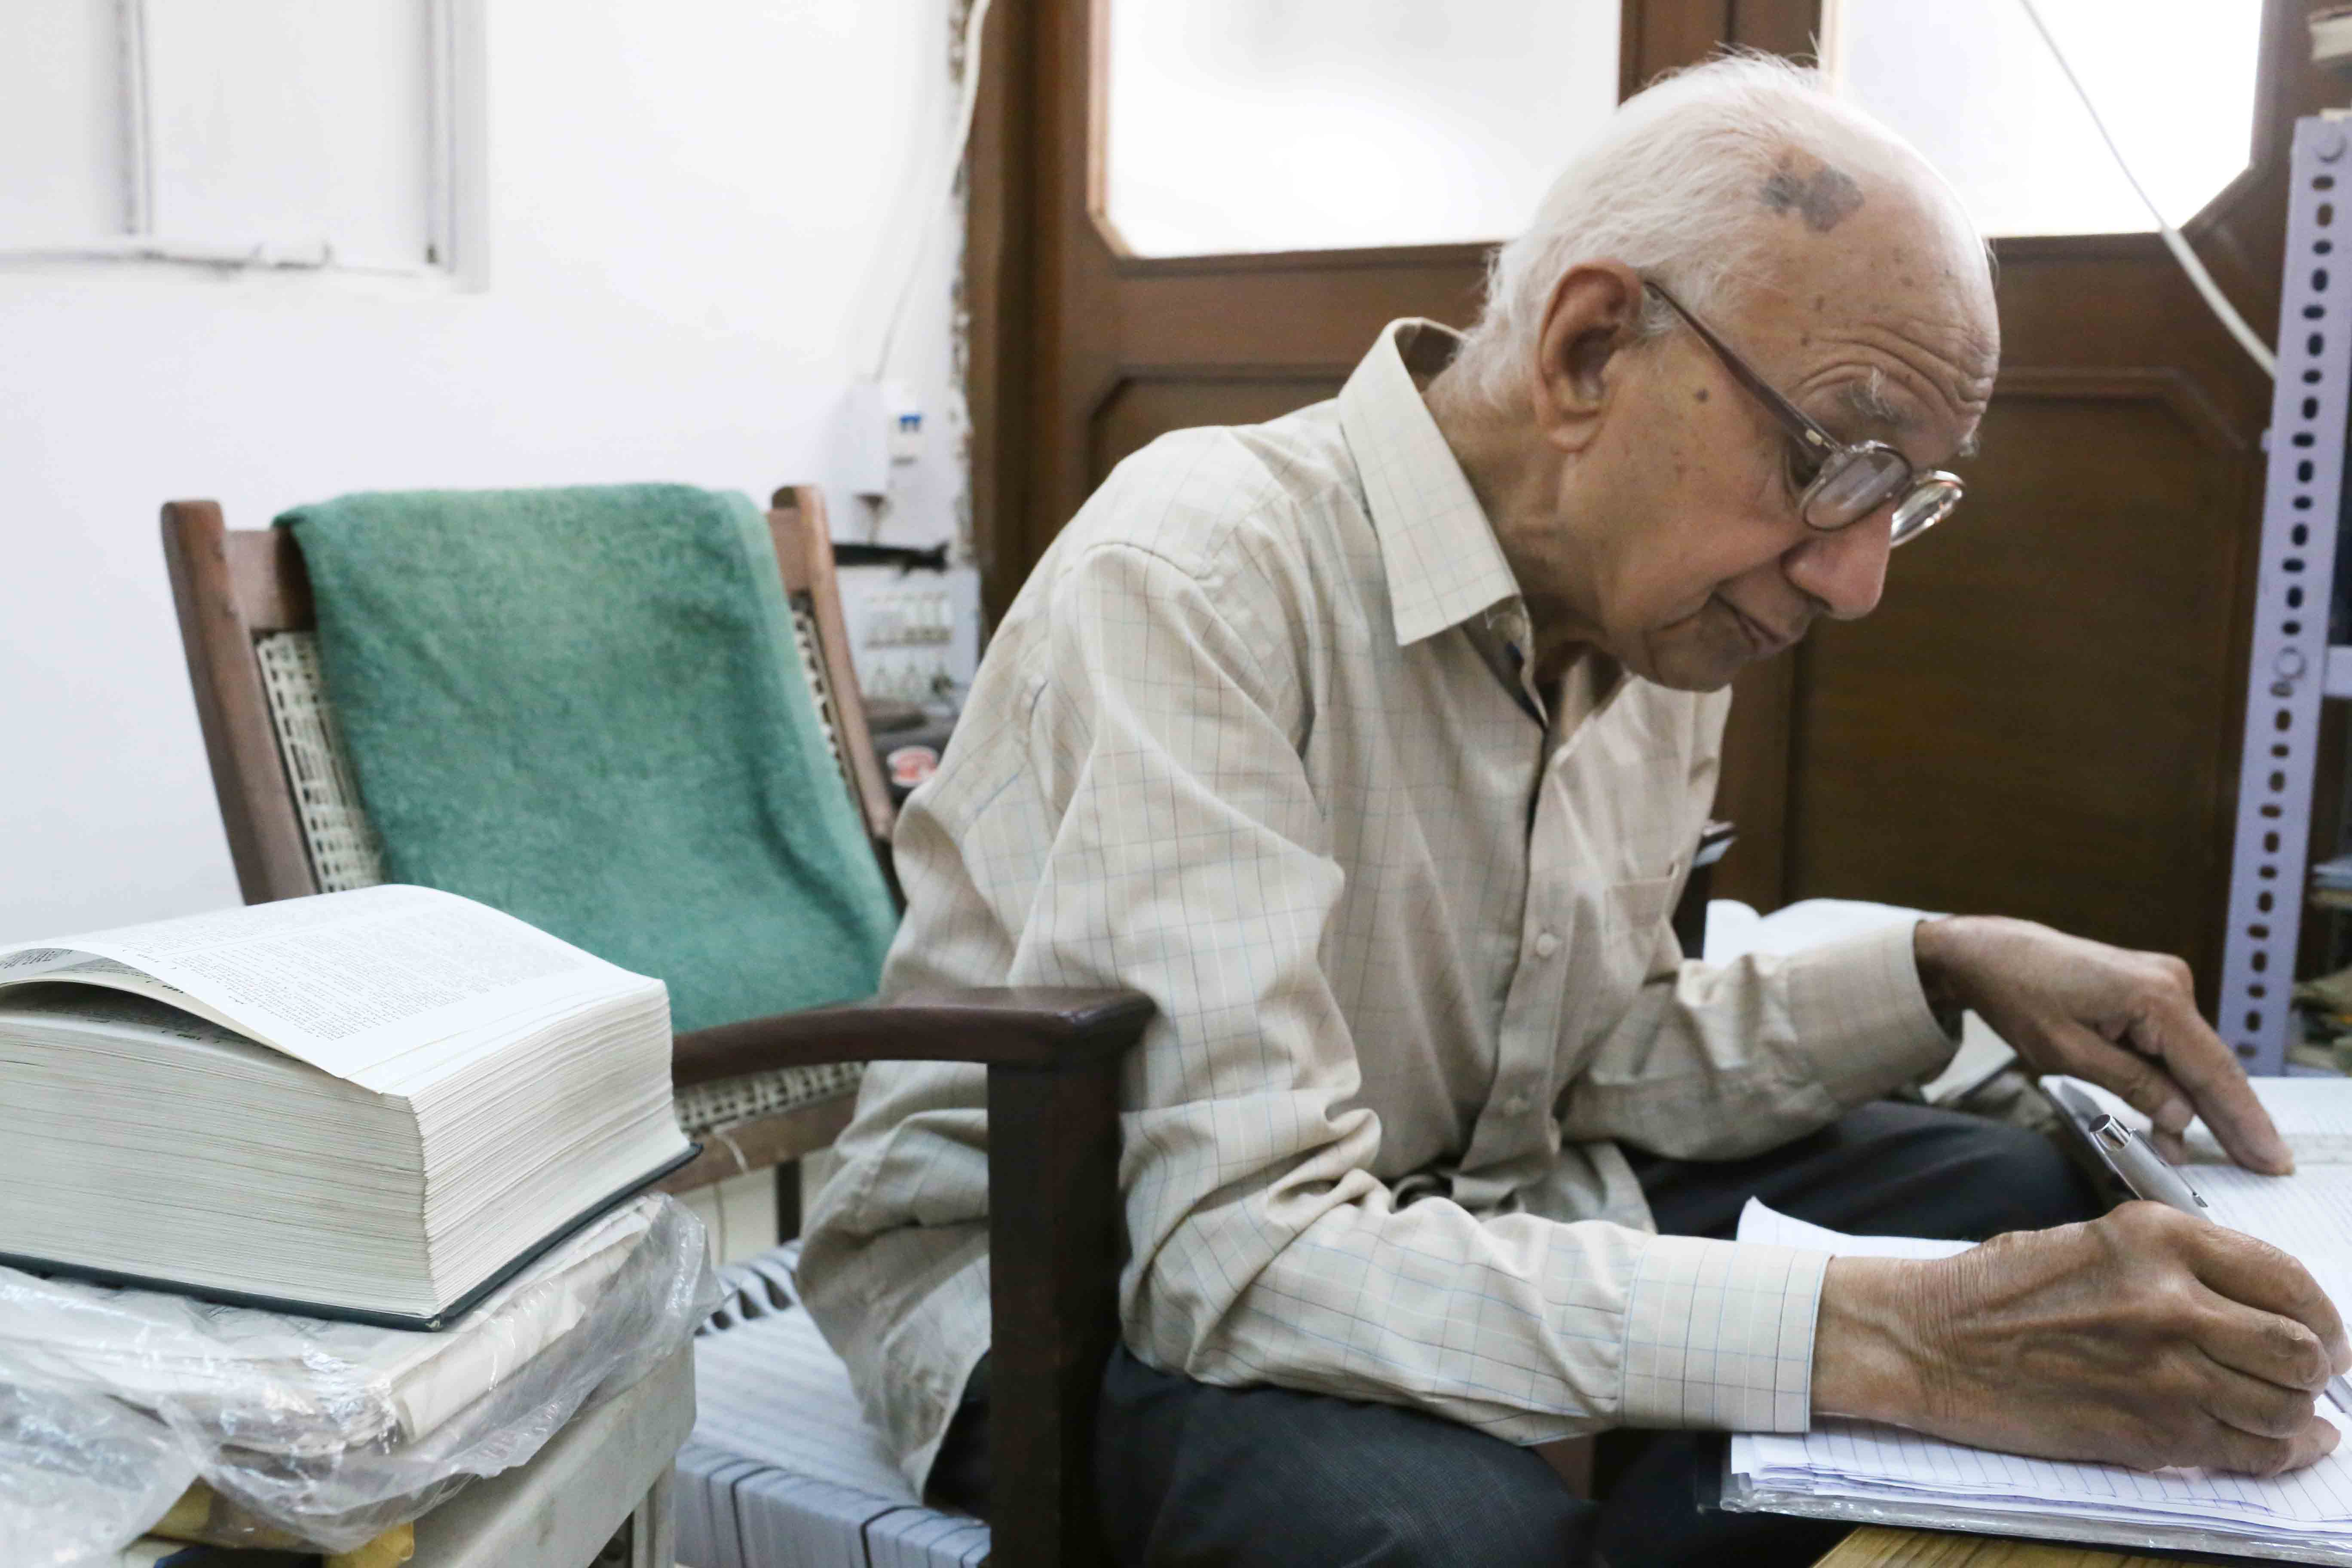 City Obituary - Delhi's Great Persian Scholar S.M. Yunus Jaffery is Dead, Ganj Mir Khan